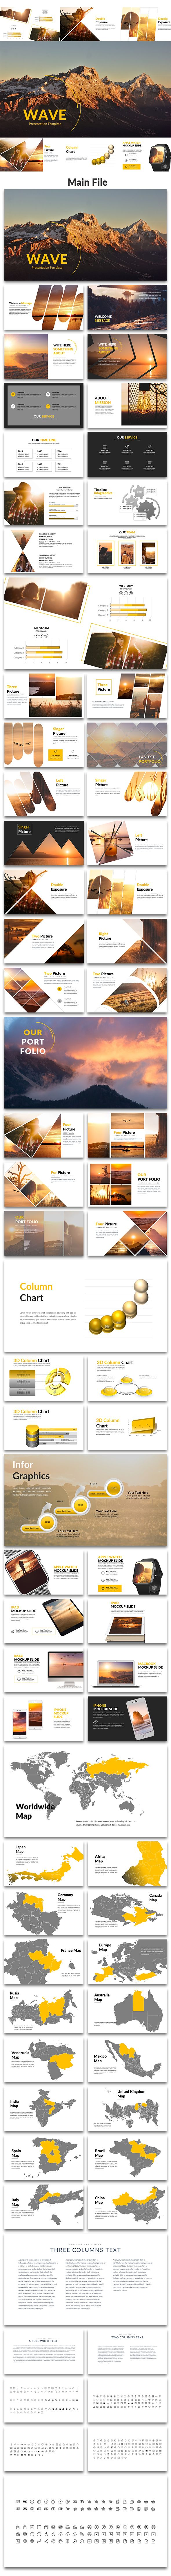 Wave - Creative PowerPoint Template